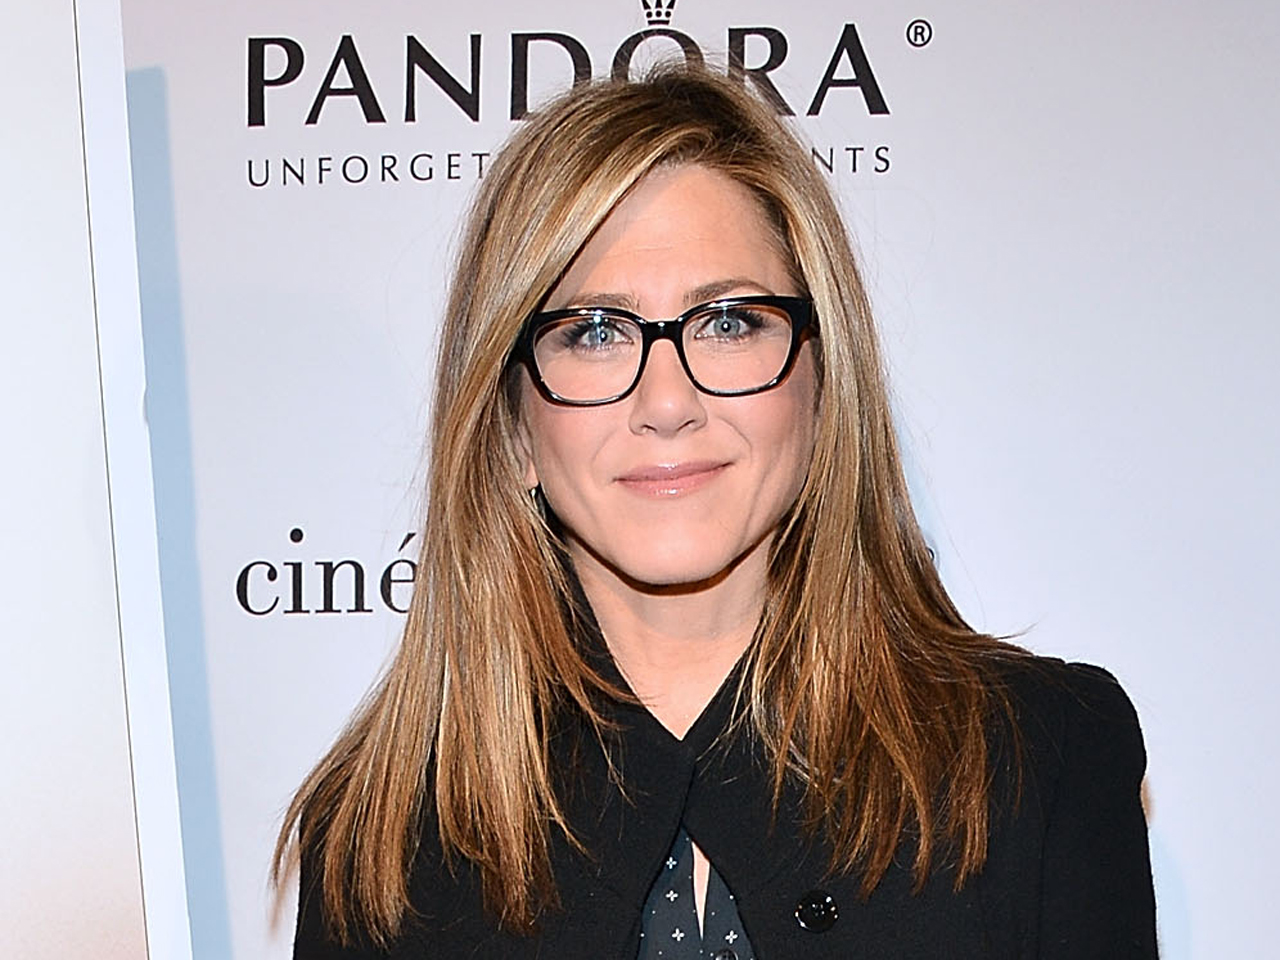 Jennifer Aniston rocking a spectacles with a gorgeous smile.